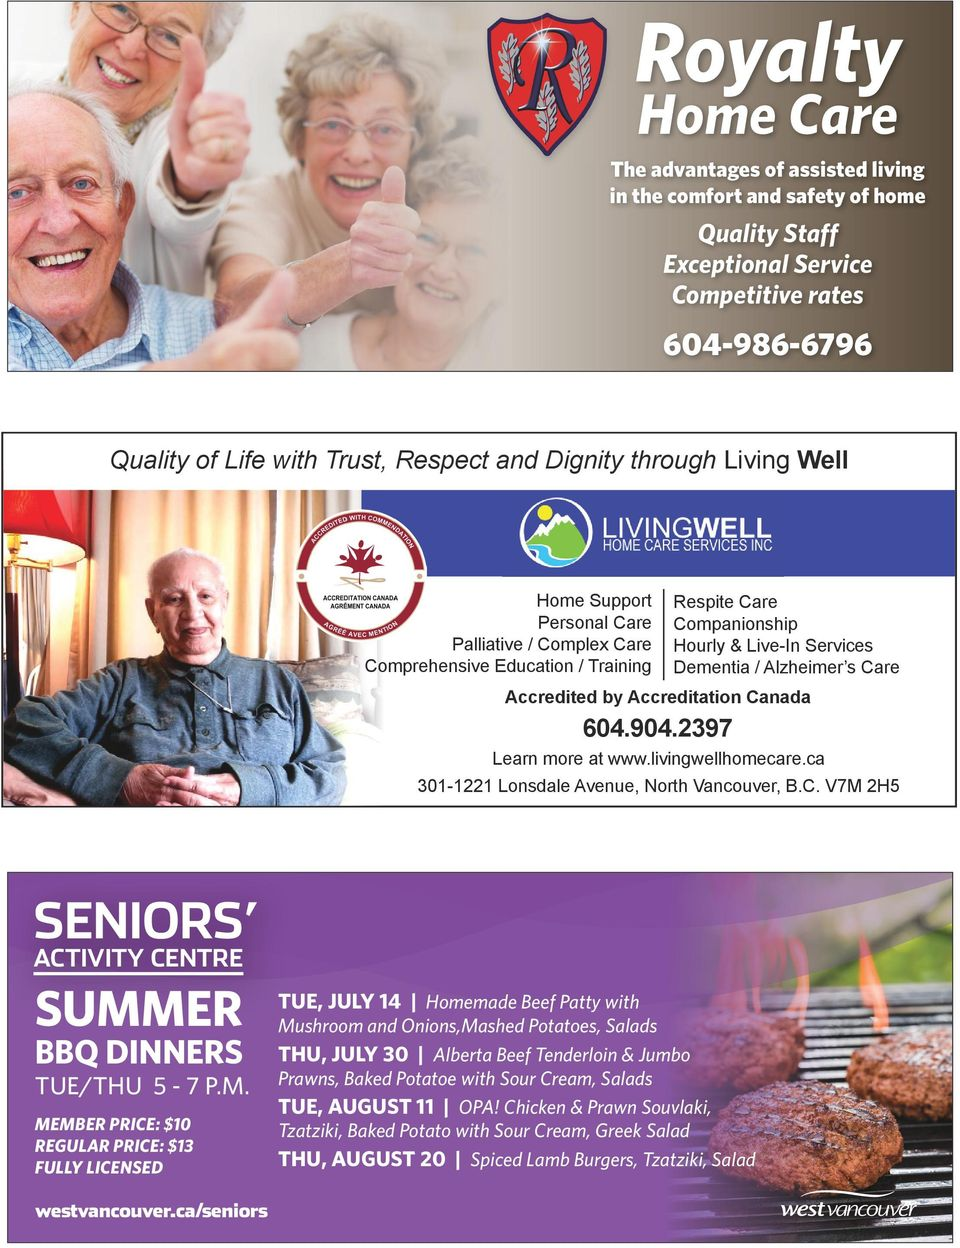 by Accreditation Canada 604.904.2397 Learn more at www.livingwellhomecare.ca 301-1221 Lonsdale Avenue, North Vancouver, B.C. V7M 2H5 SENIORS ACTIVITY CENTRE SUMMER BBQ DINNERS TUE/THU 5-7 P.M. MEMBER PRICE: $10 REGULAR PRICE: $13 FULLY LICENSED westvancouver.